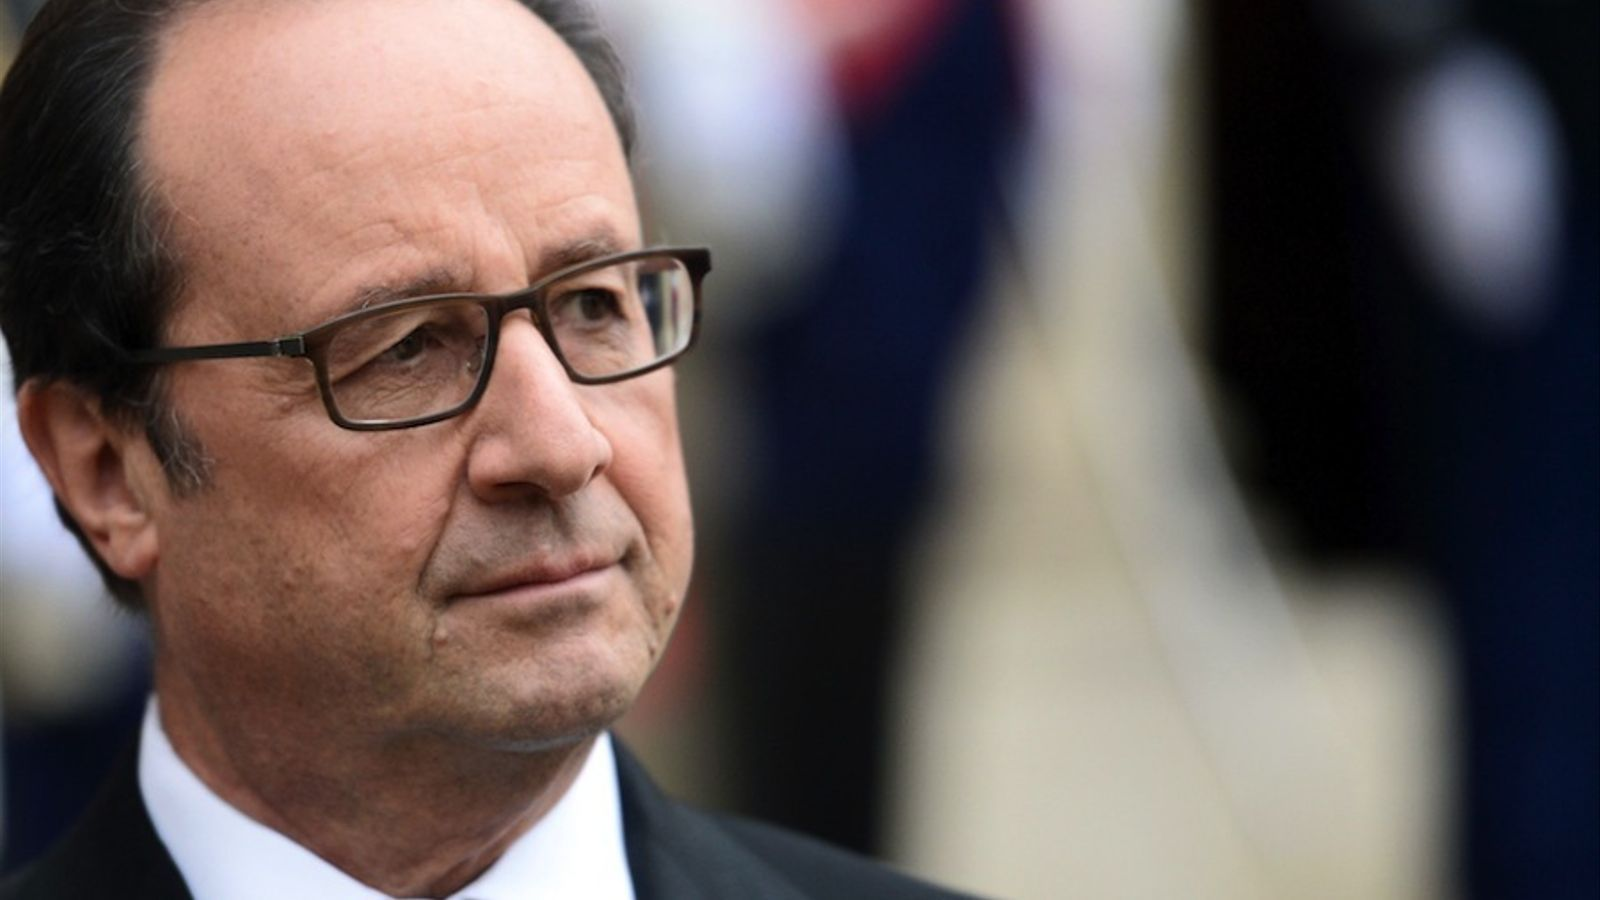 French President Francois Hollande looks on as he gives a statement on October 25, 2016 following his meeting with Andorra's head of government and Andorran Parliament President at the Elysee Presidential Palace in Paris.